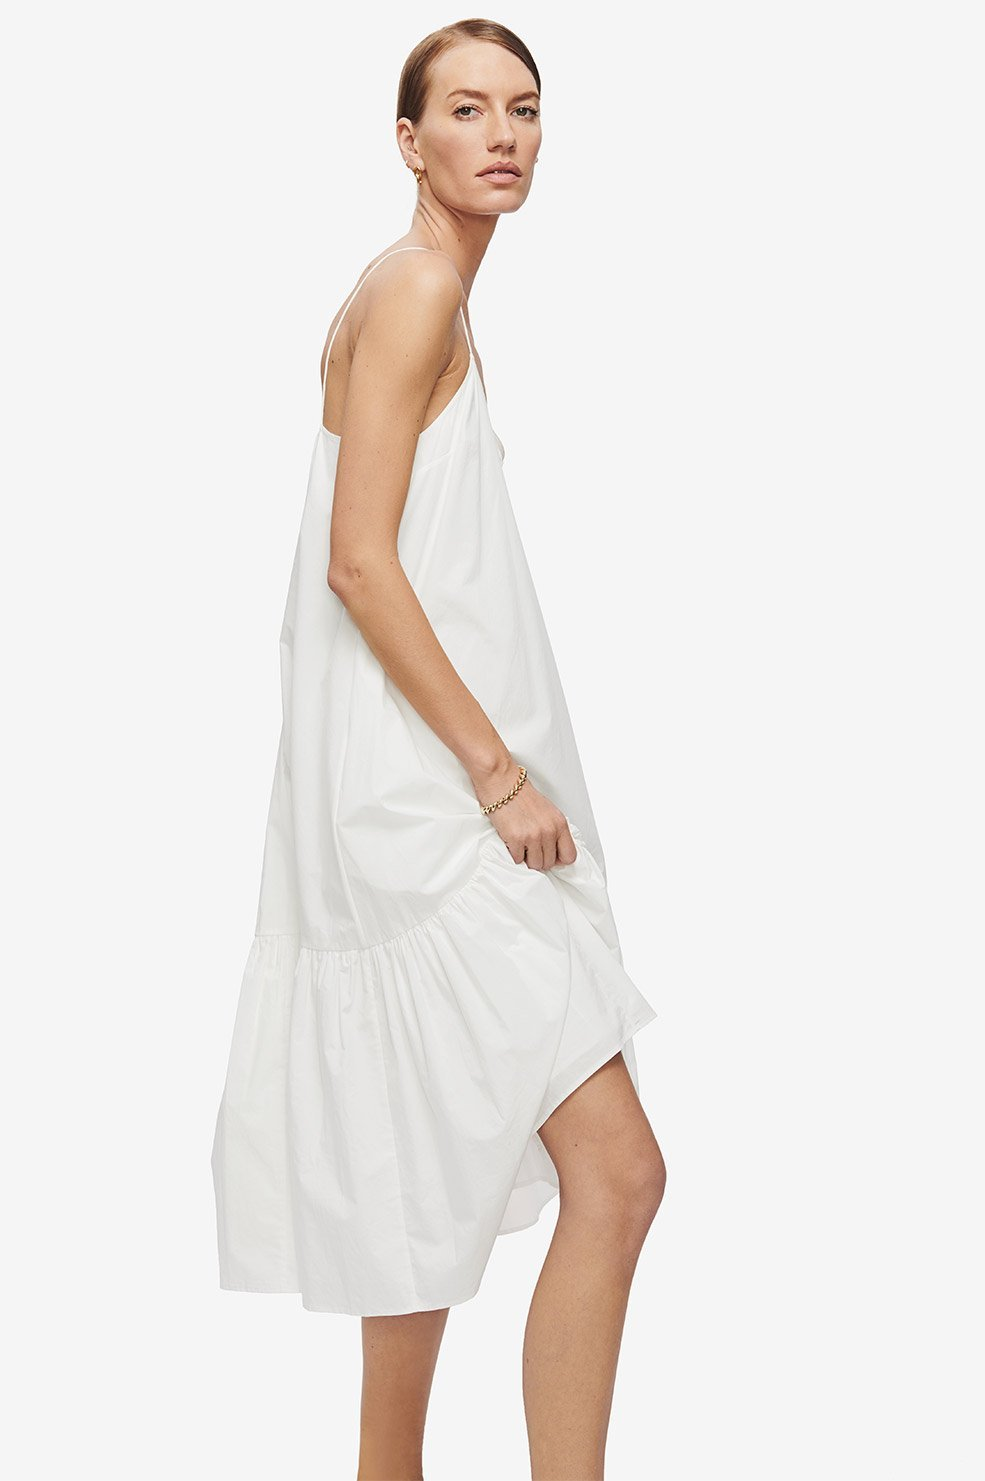 Anine Bing Womens Dress Anine Bing | Averie Dress - White